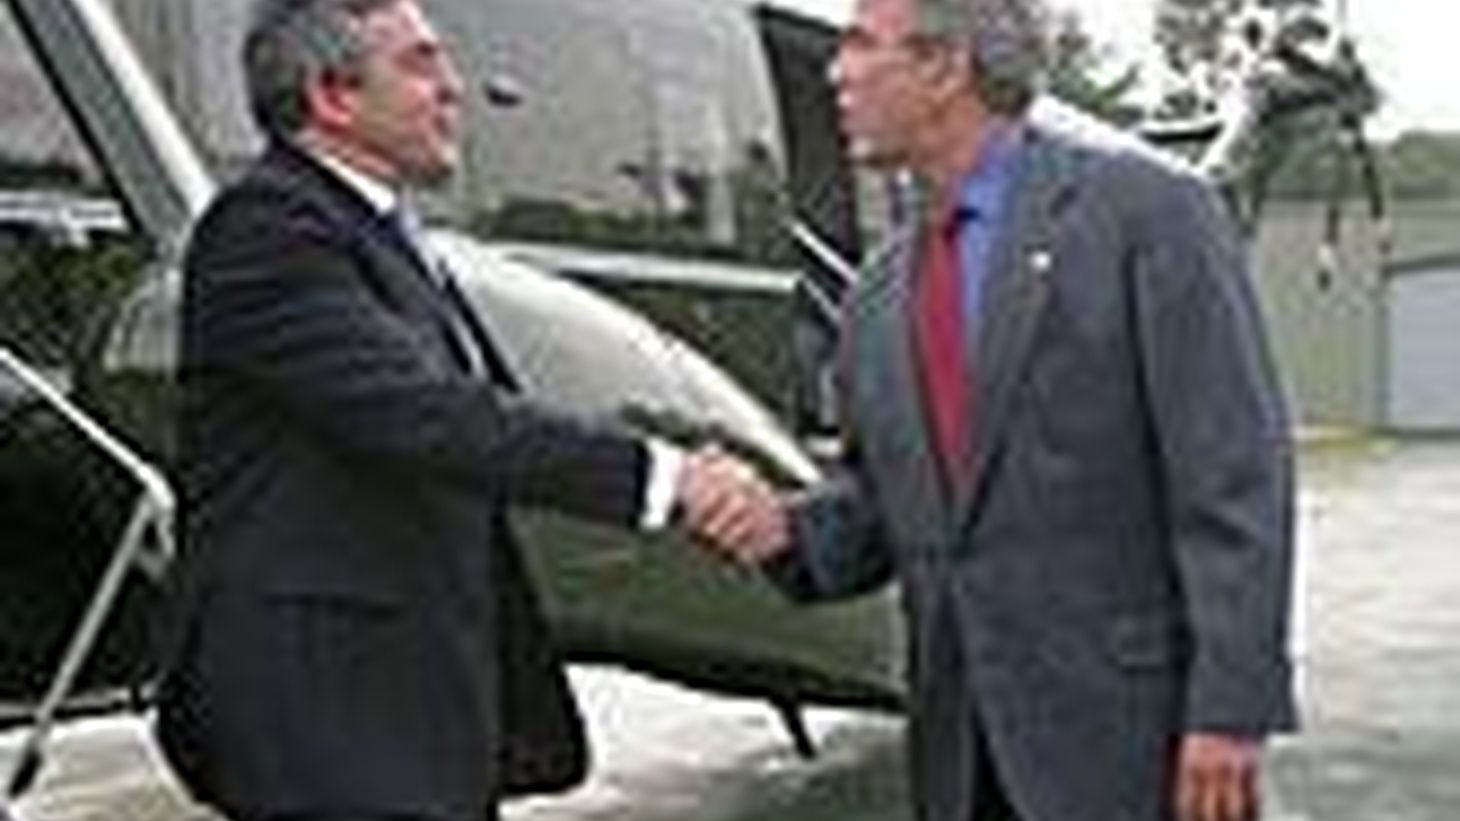 """Britain's new Prime Minister met with President Bush today at Camp David. What's the latest on the """"special relationship?"""" How different is Brown from Tony Blair when it comes to Iraq and the """"war on terror?"""" Plus, the South Korean hostages, and a breakthrough in  the battle against Multiple Sclerosis."""